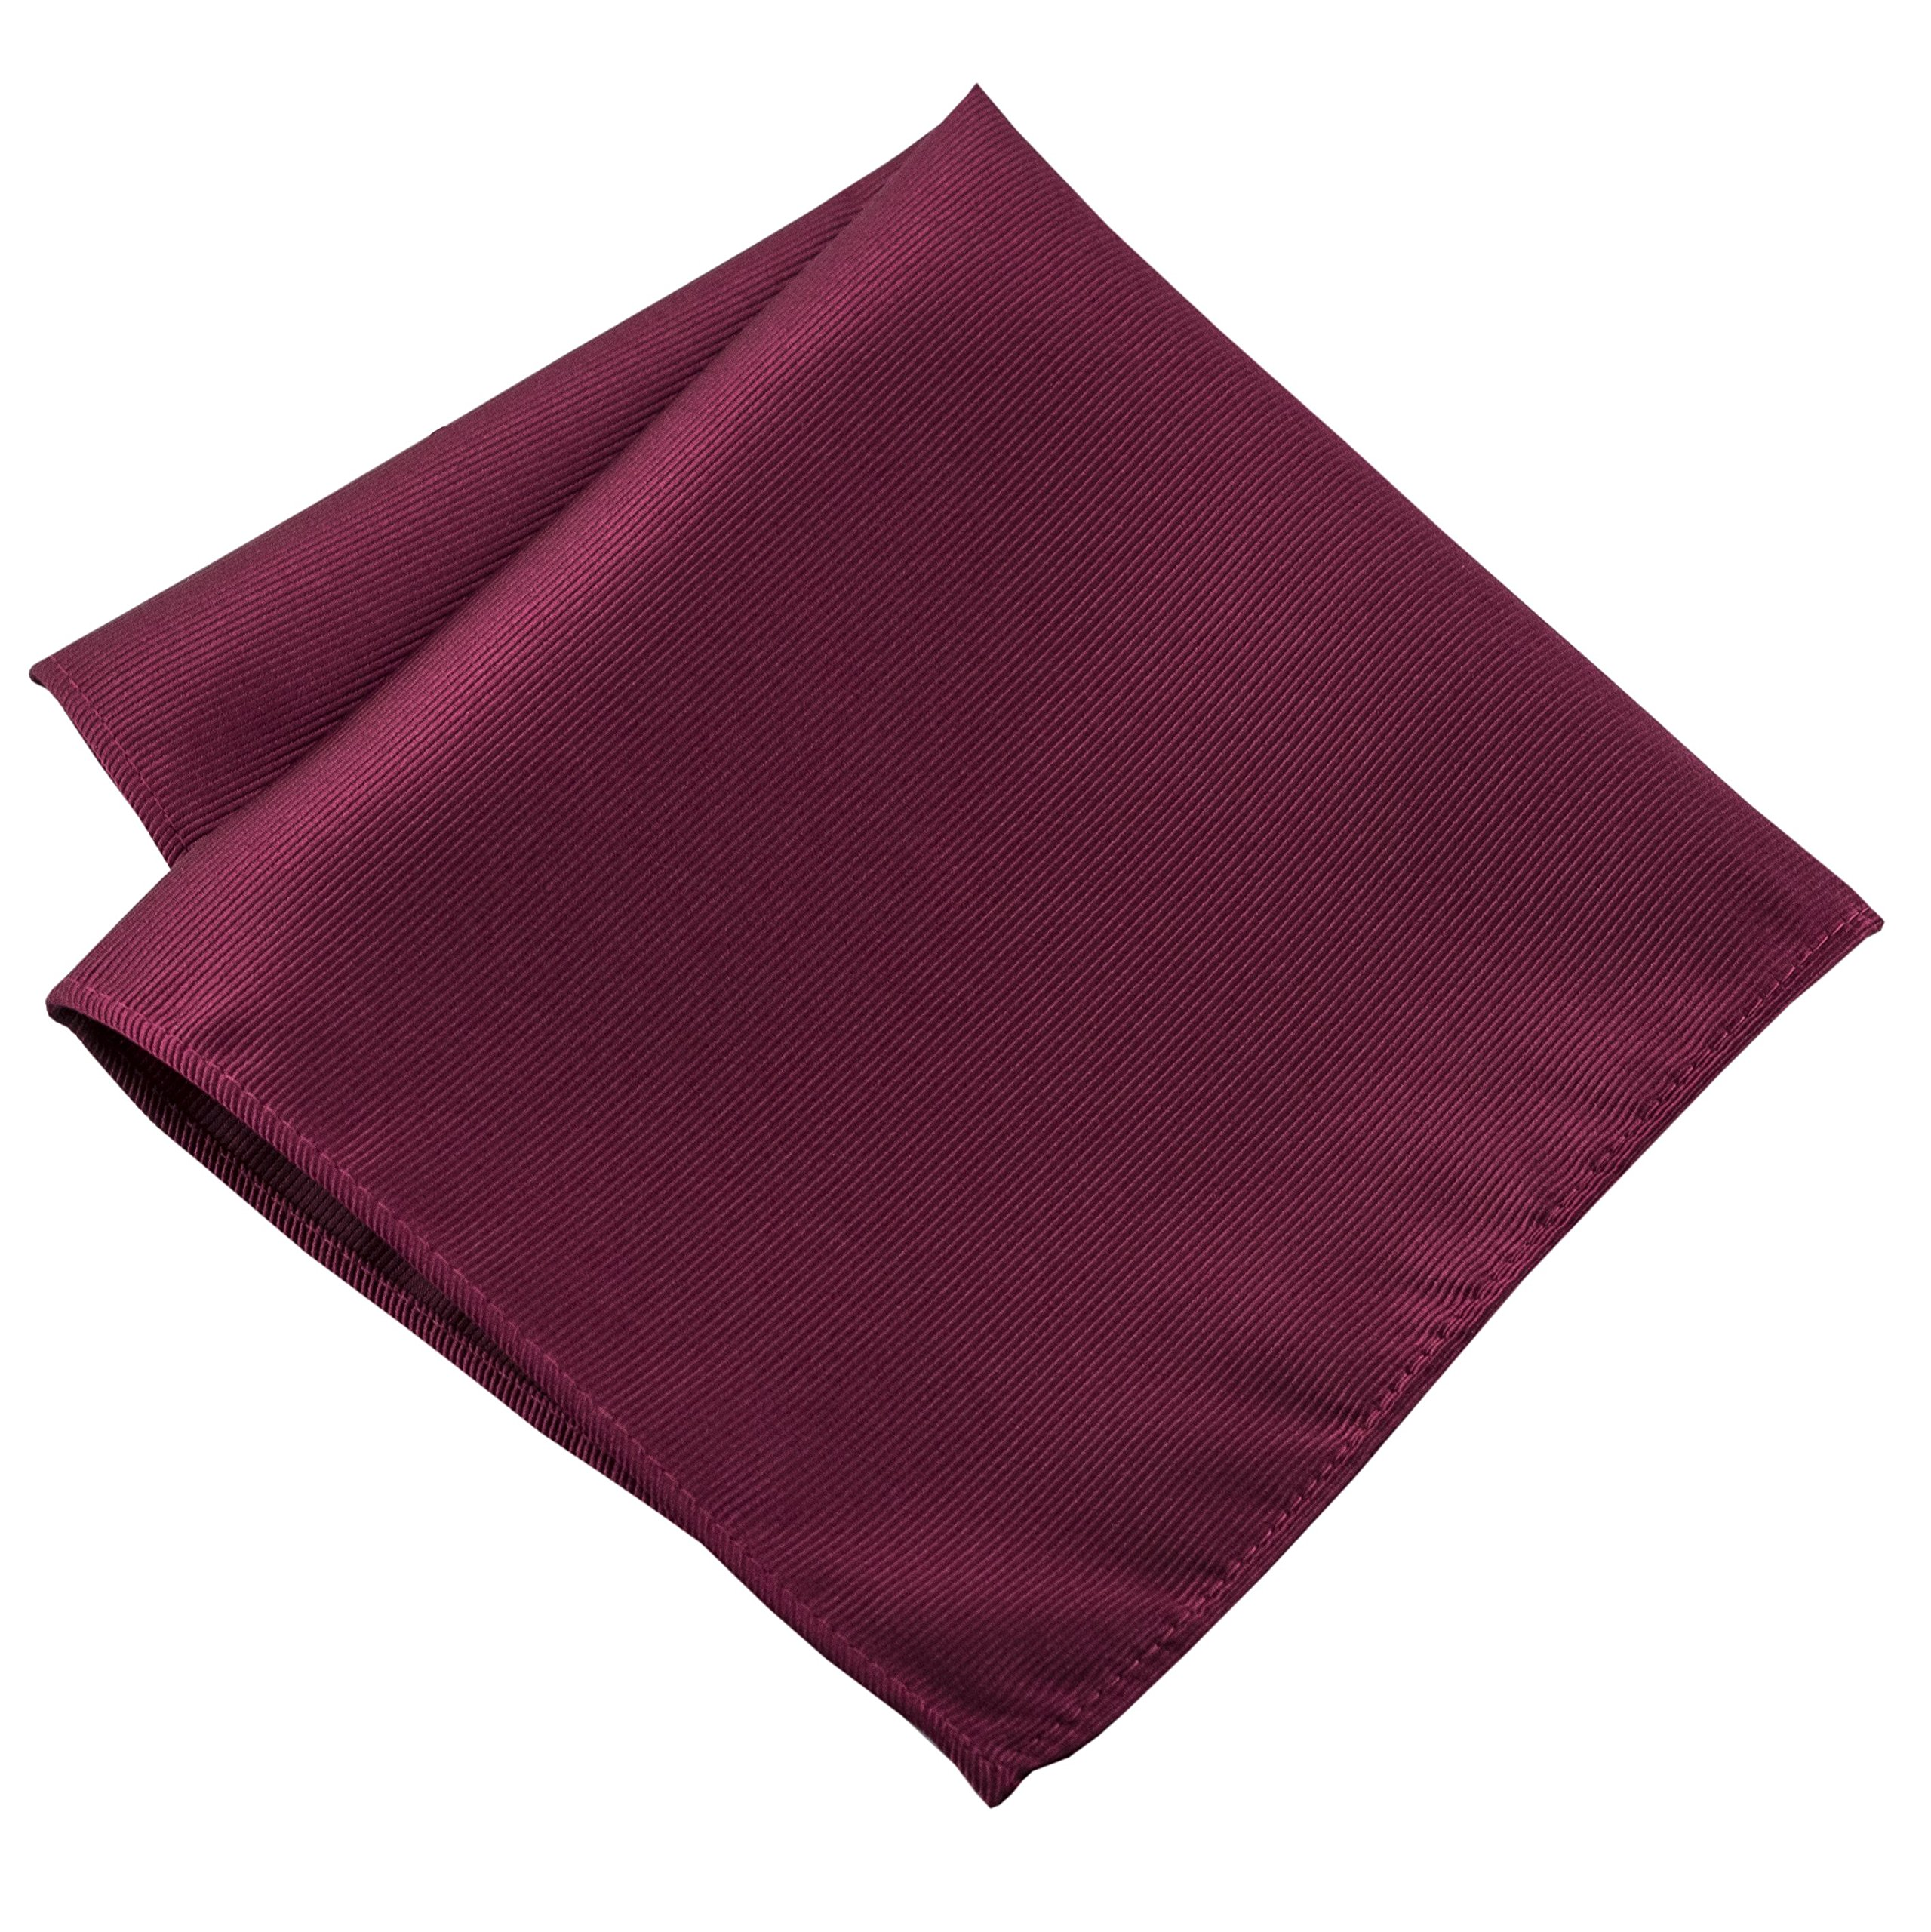 100% Silk Woven Burgundy Pocket Square Handkerchief by John William